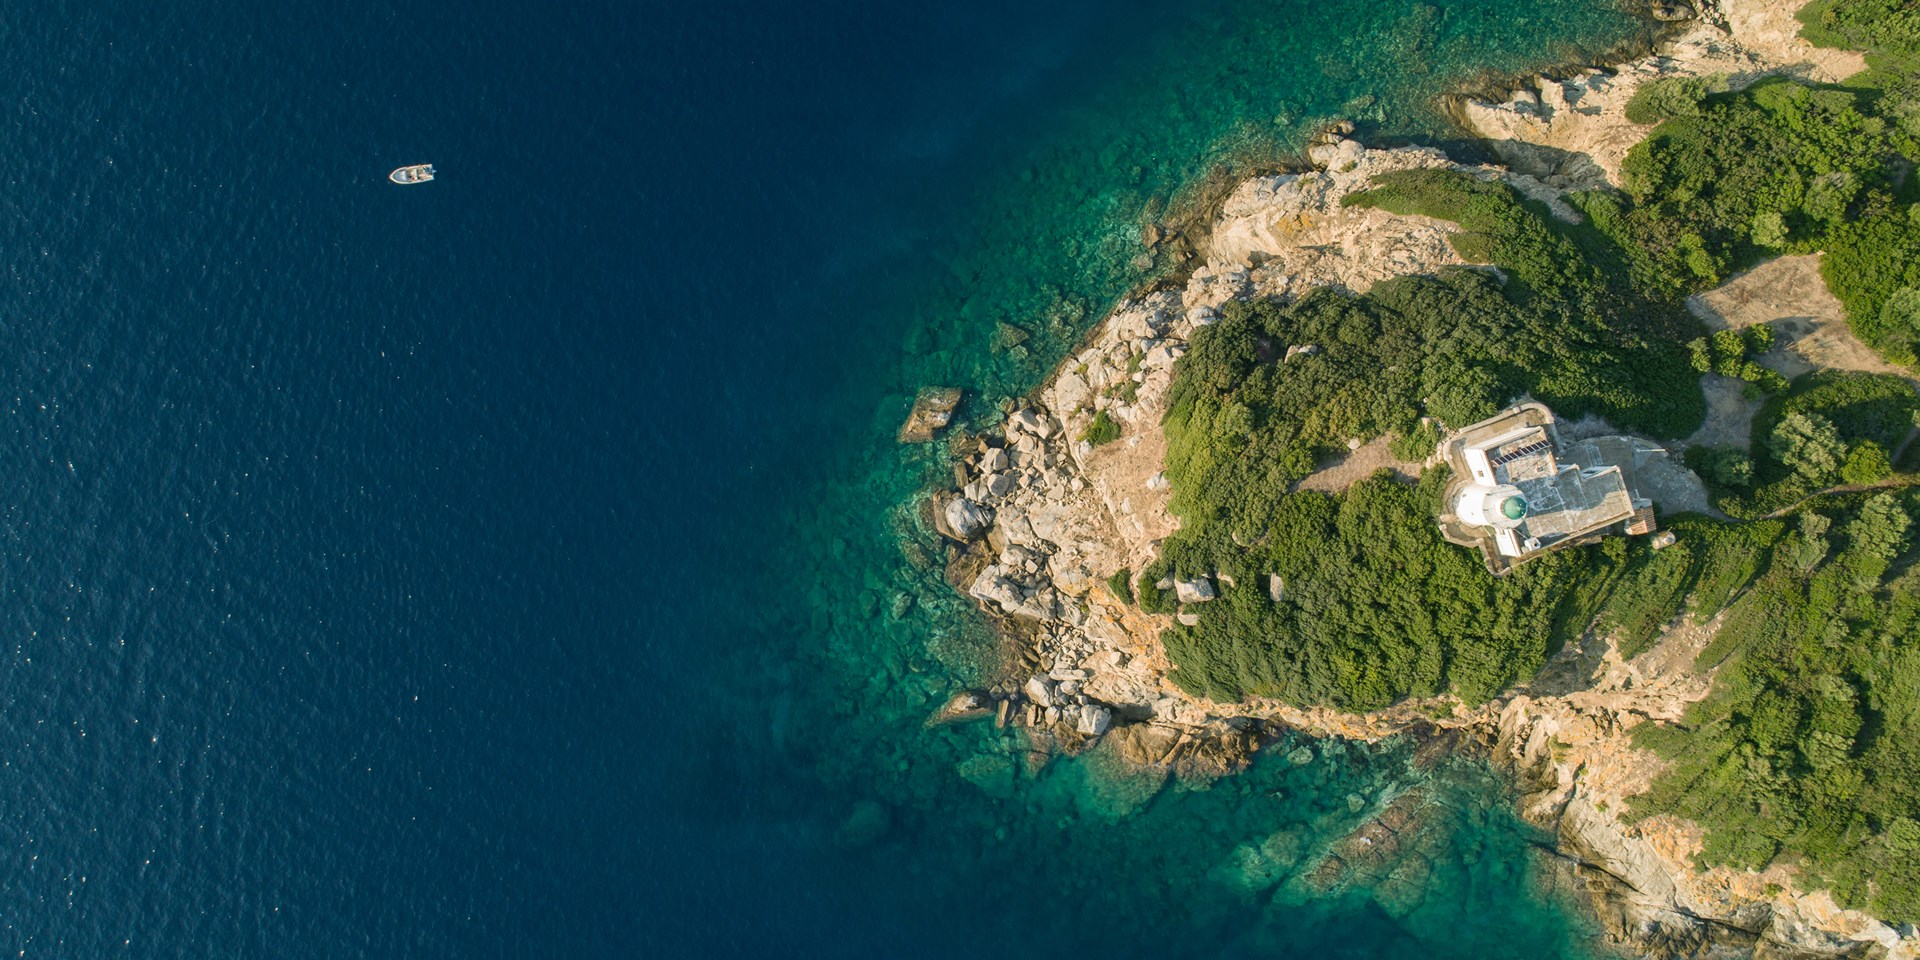 Aerial view of an island with a lighthouse on it